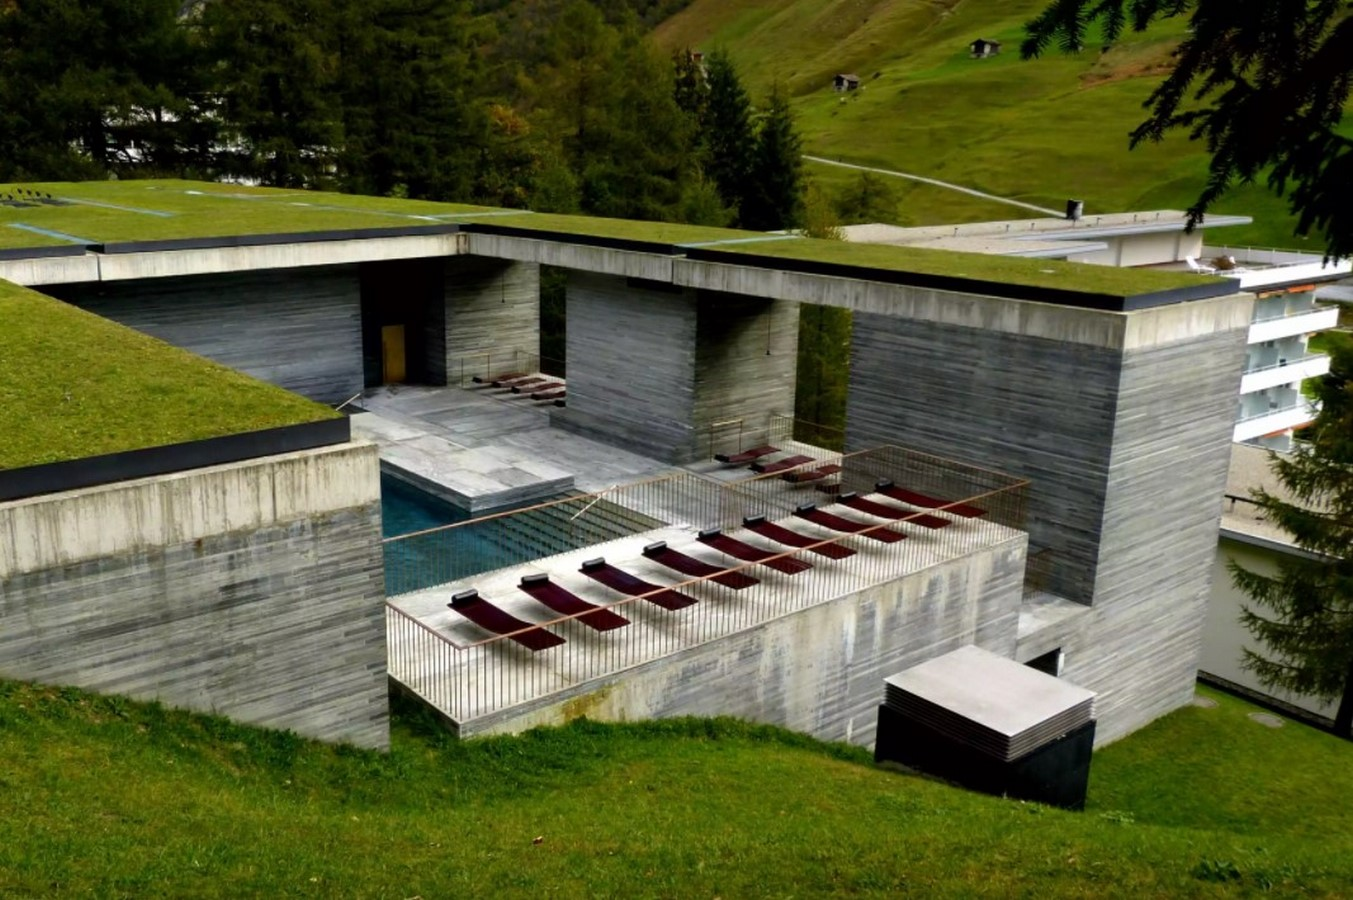 10 Things you did not know about Peter Zumthor - Sheet9